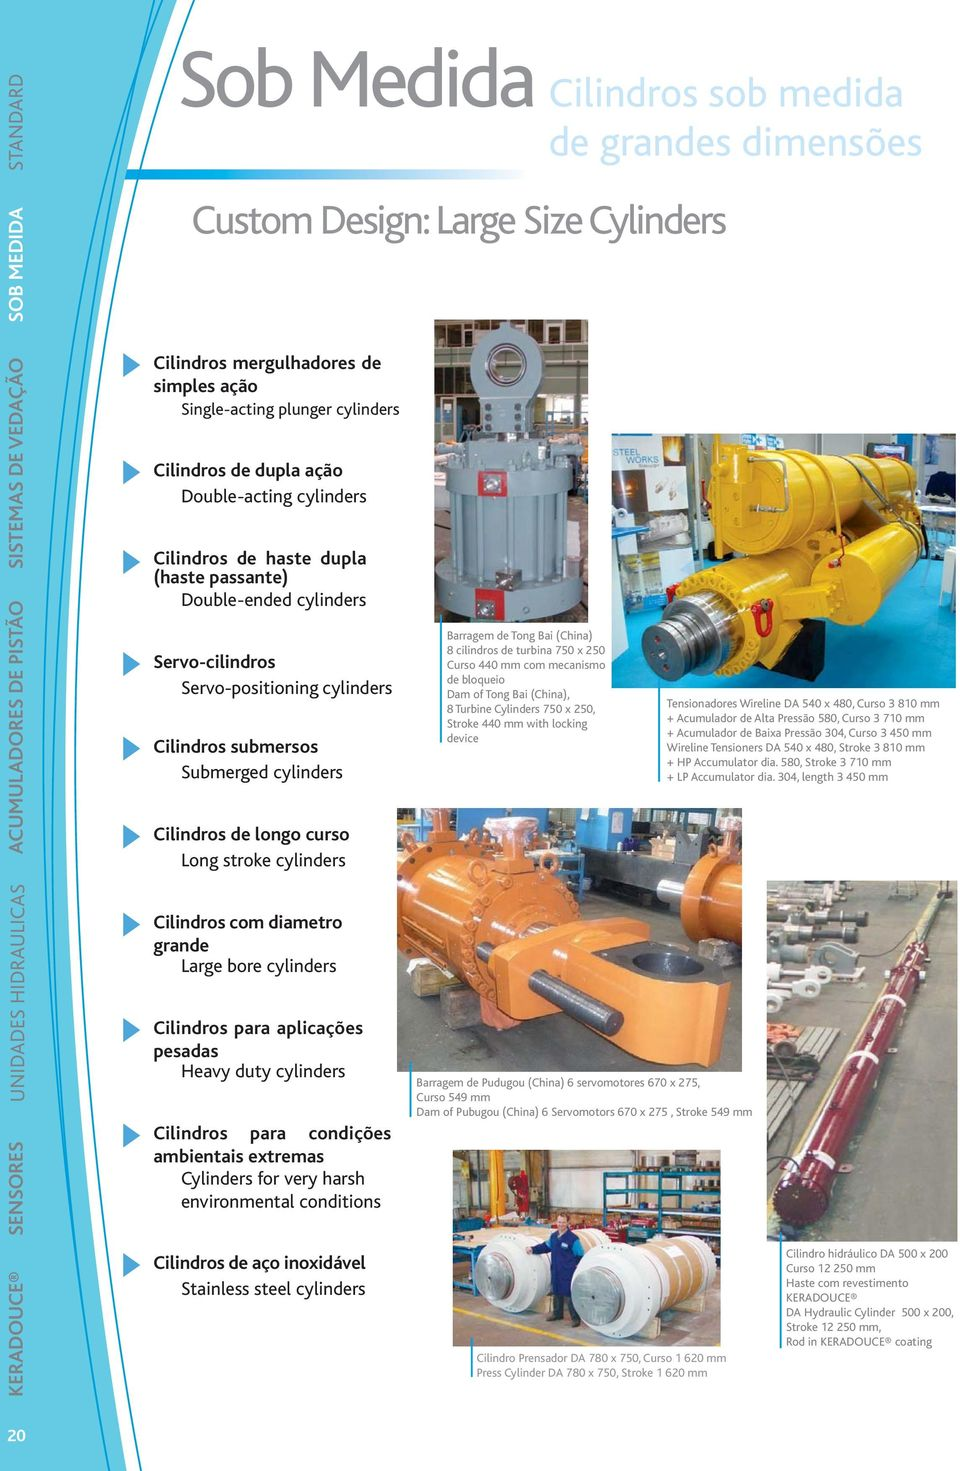 Servo-cilindros Servo-positioning cylinders Cilindros submersos Submerged cylinders Cilindros de longo curso Long stroke cylinders Cilindros com diametro grande Large bore cylinders Cilindros para